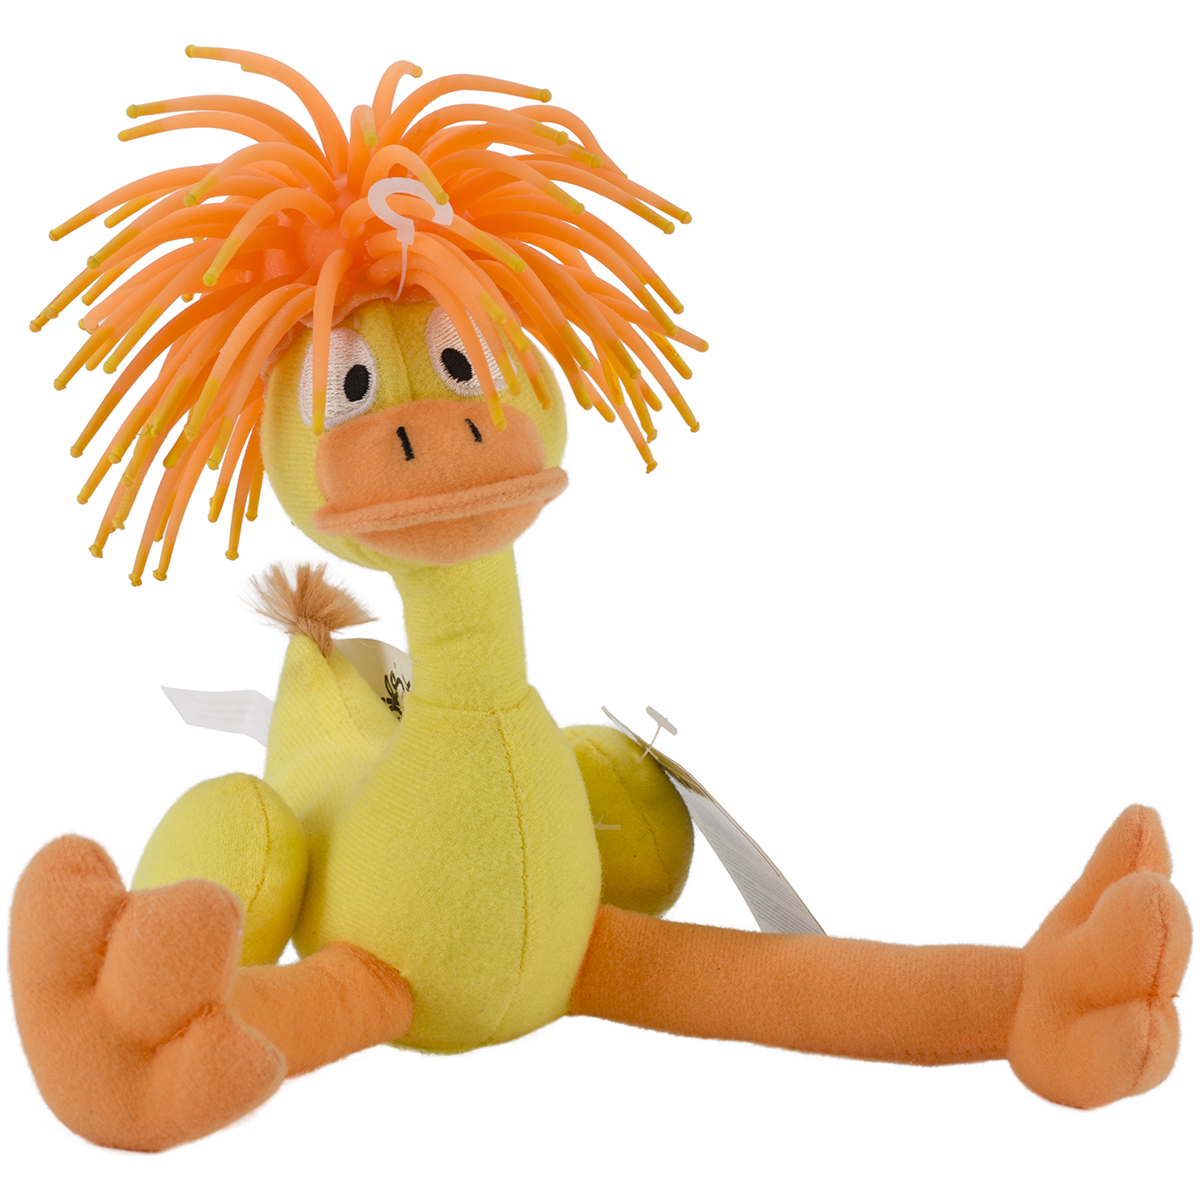 Zibbies 440-13 Dukduk 7 In. Plush Pet Toy With Crazy Hair and Squeaker - 2 Pack